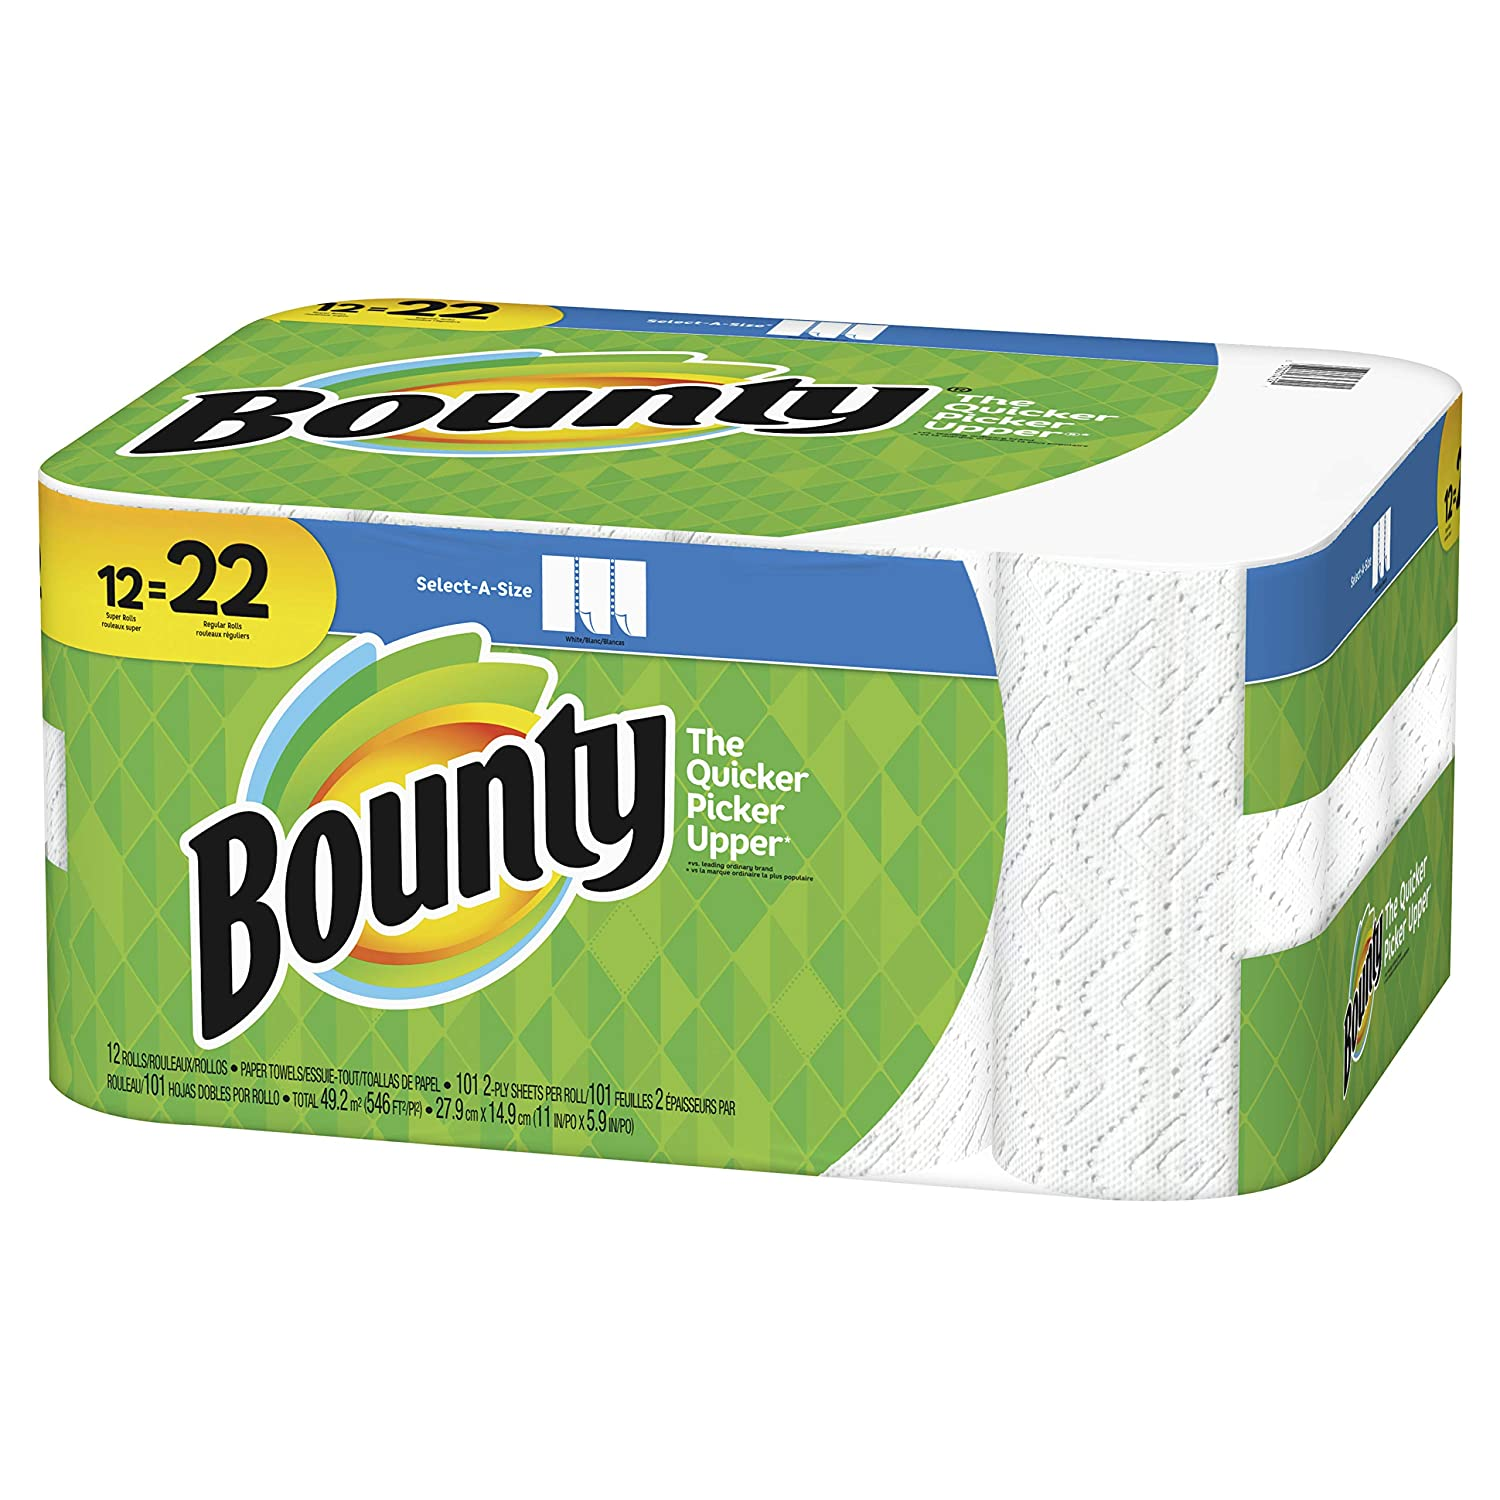 Bounty Select-A-Size Paper Towels, White, 12 ct: Amazon.com: Grocery & Gourmet Food